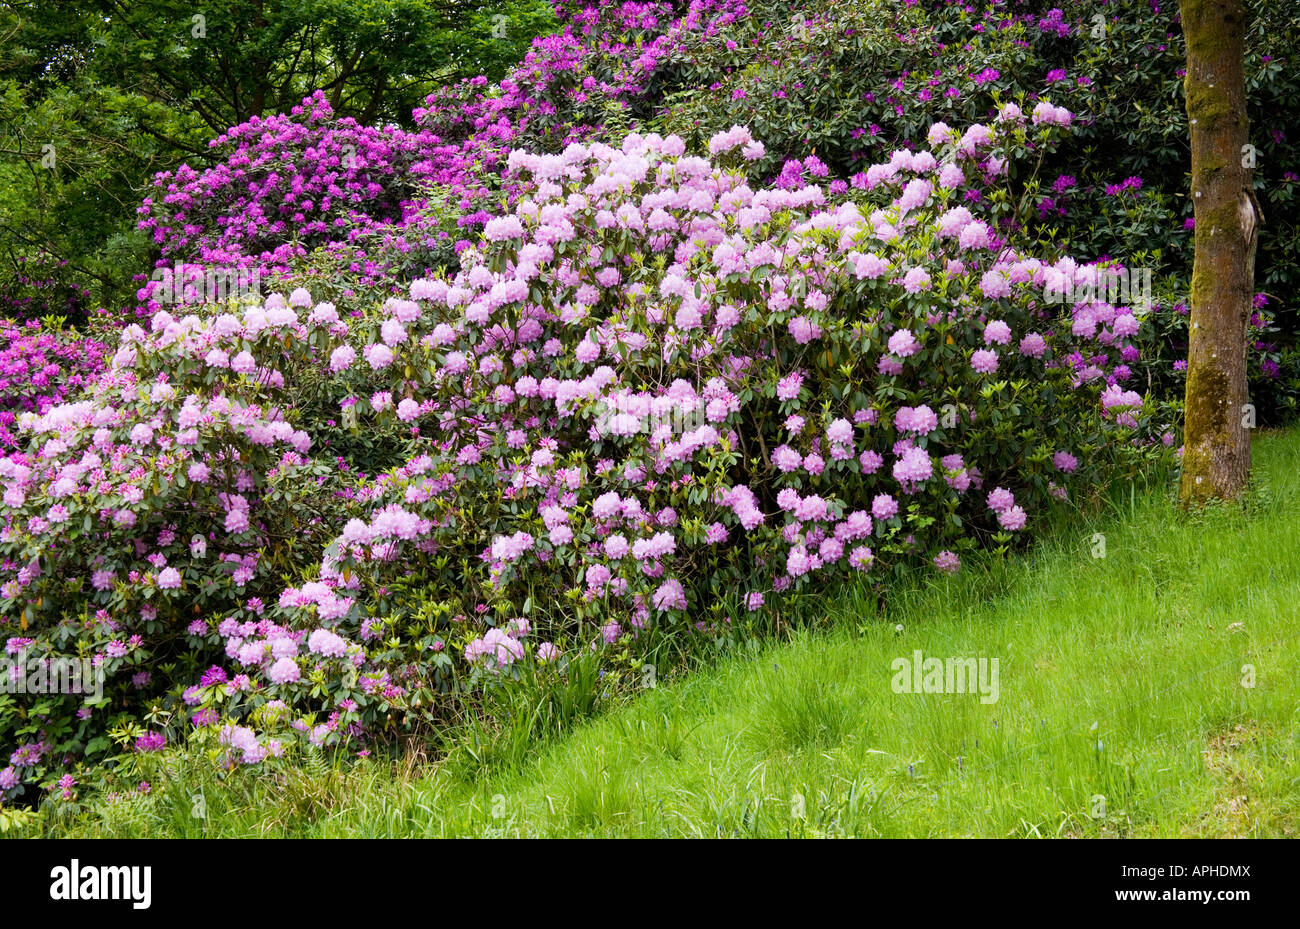 Purple rhododendron bushes in flower at Bowood House Rhododendron Walks, Chippenham, Wiltshire, England, UK Stock Photo